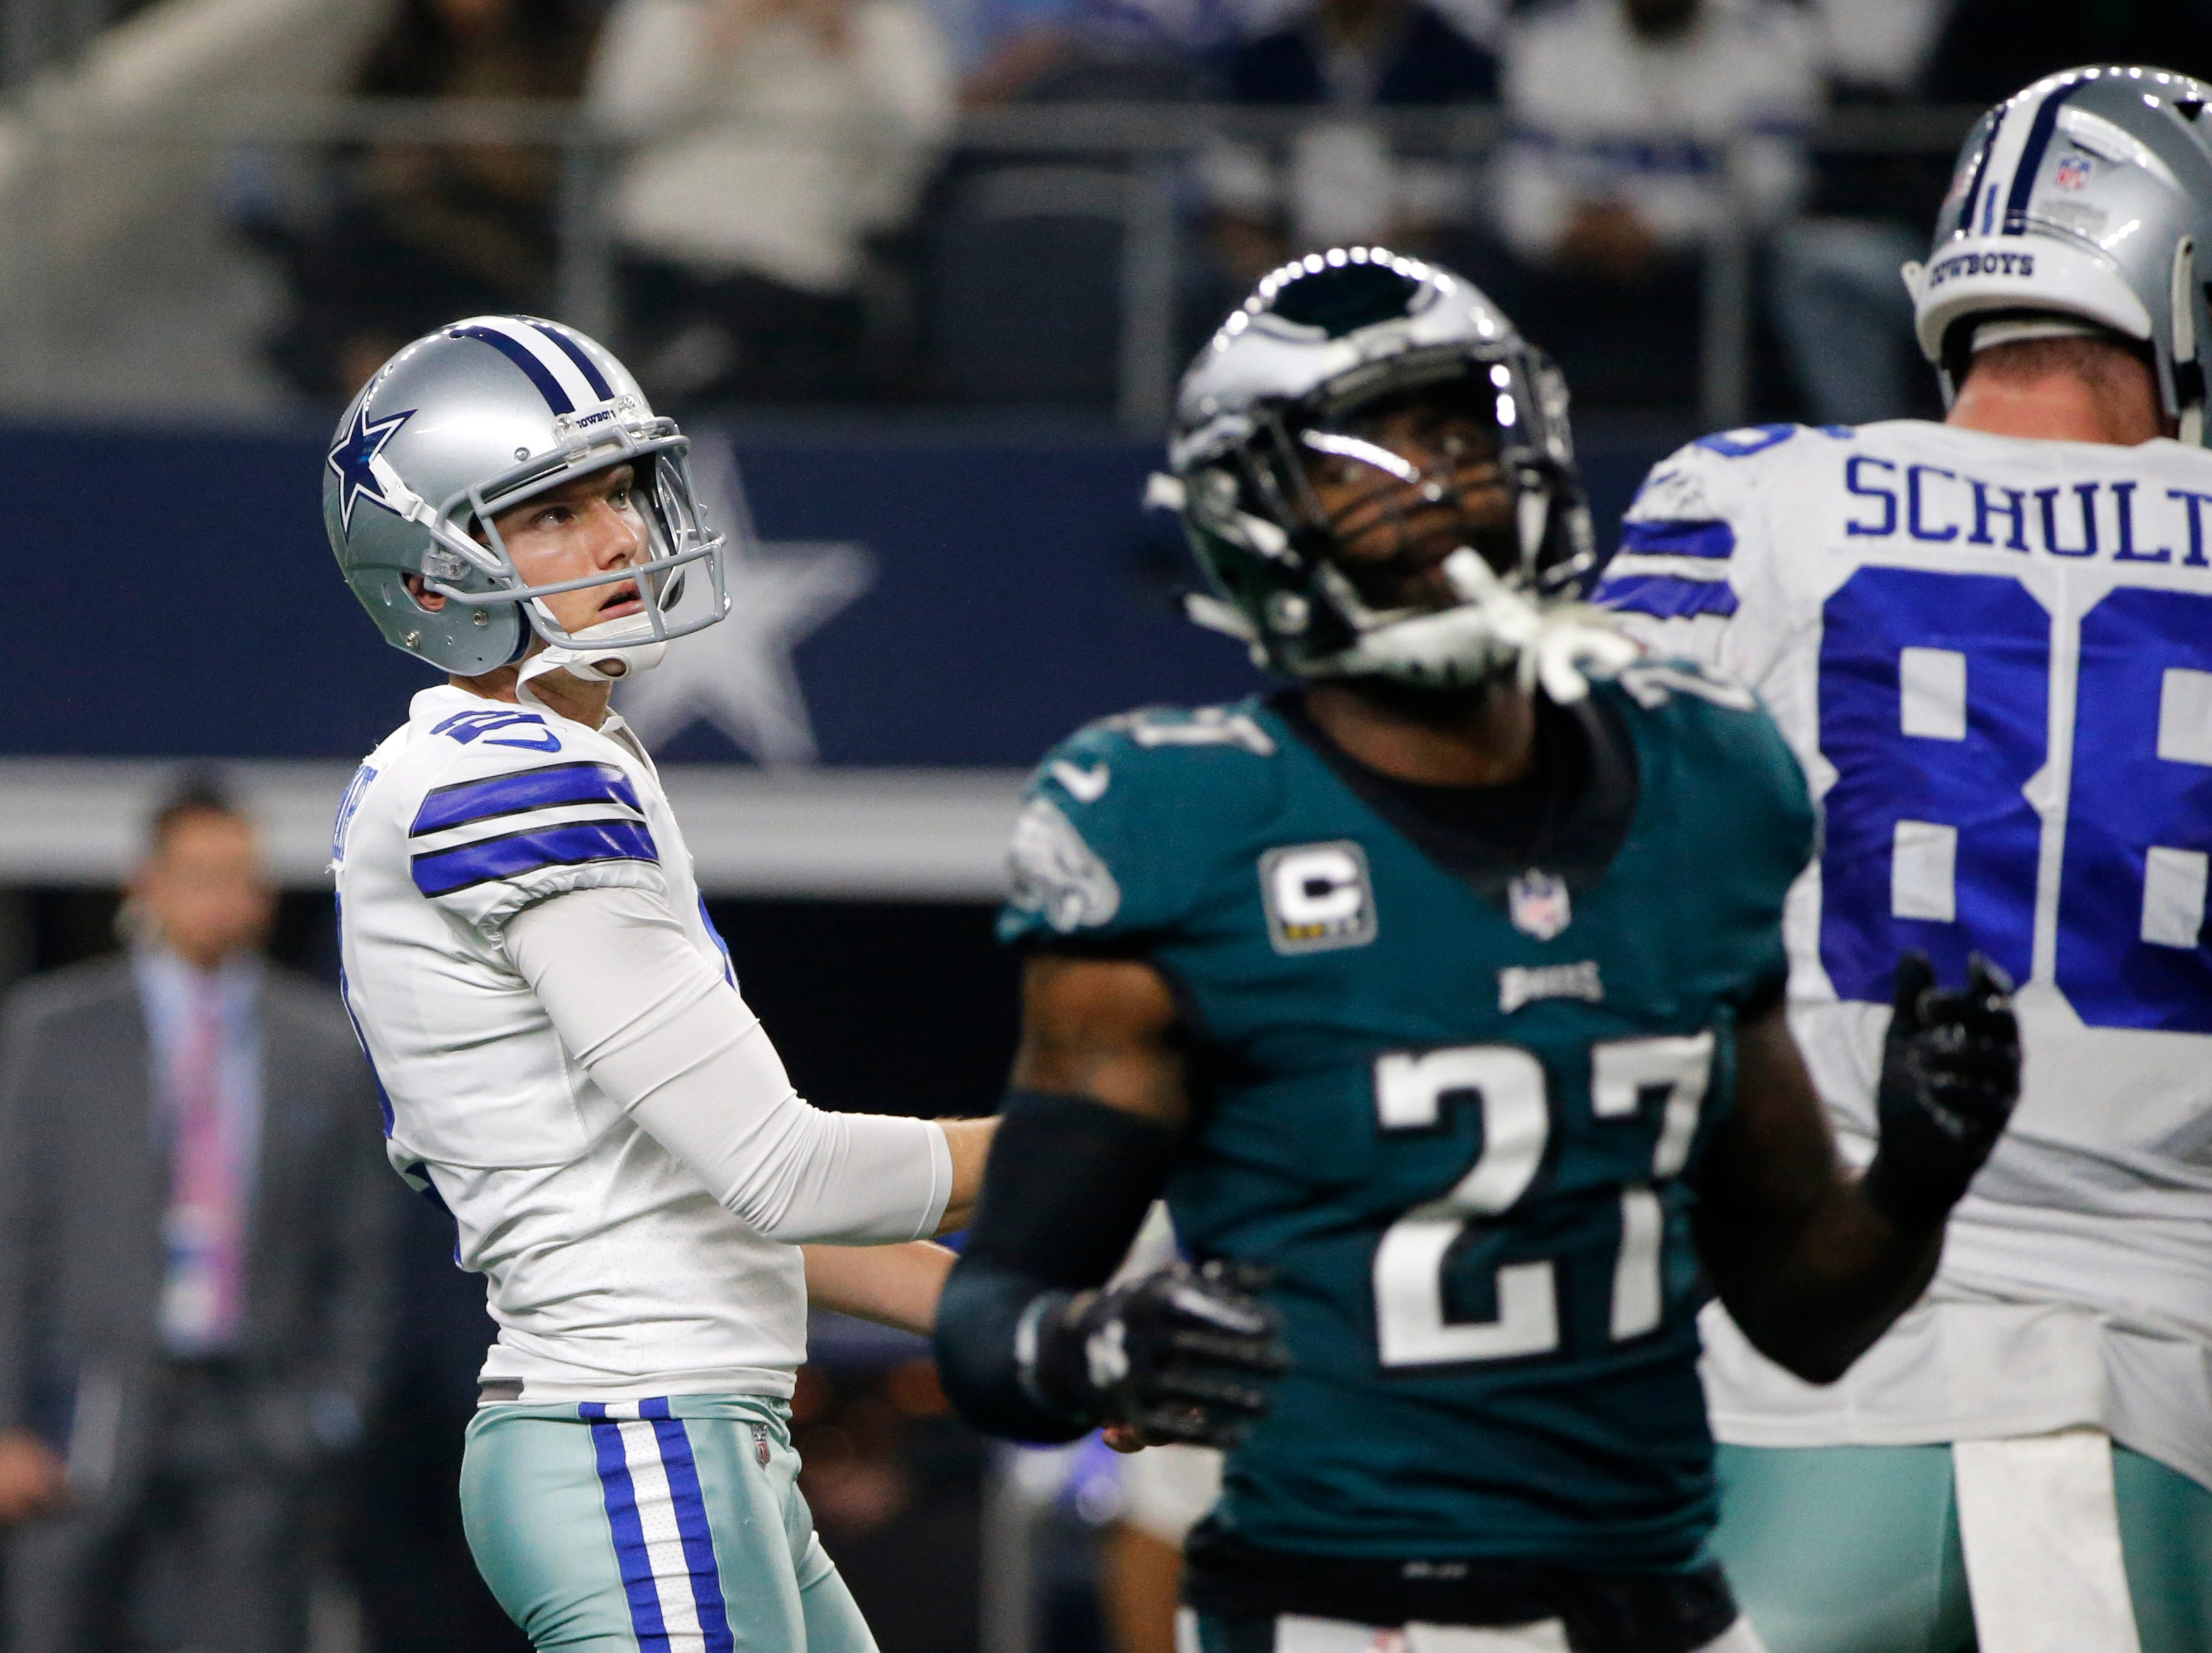 Dallas Cowboys' Brett Maher (2) watches his field goal attempt as Philadelphia Eagles' Malcolm Jenkins (27) walks away in the second half of an NFL football game in Arlington, Texas, Sunday, Dec. 9, 2018. (AP Photo/Michael Ainsworth)